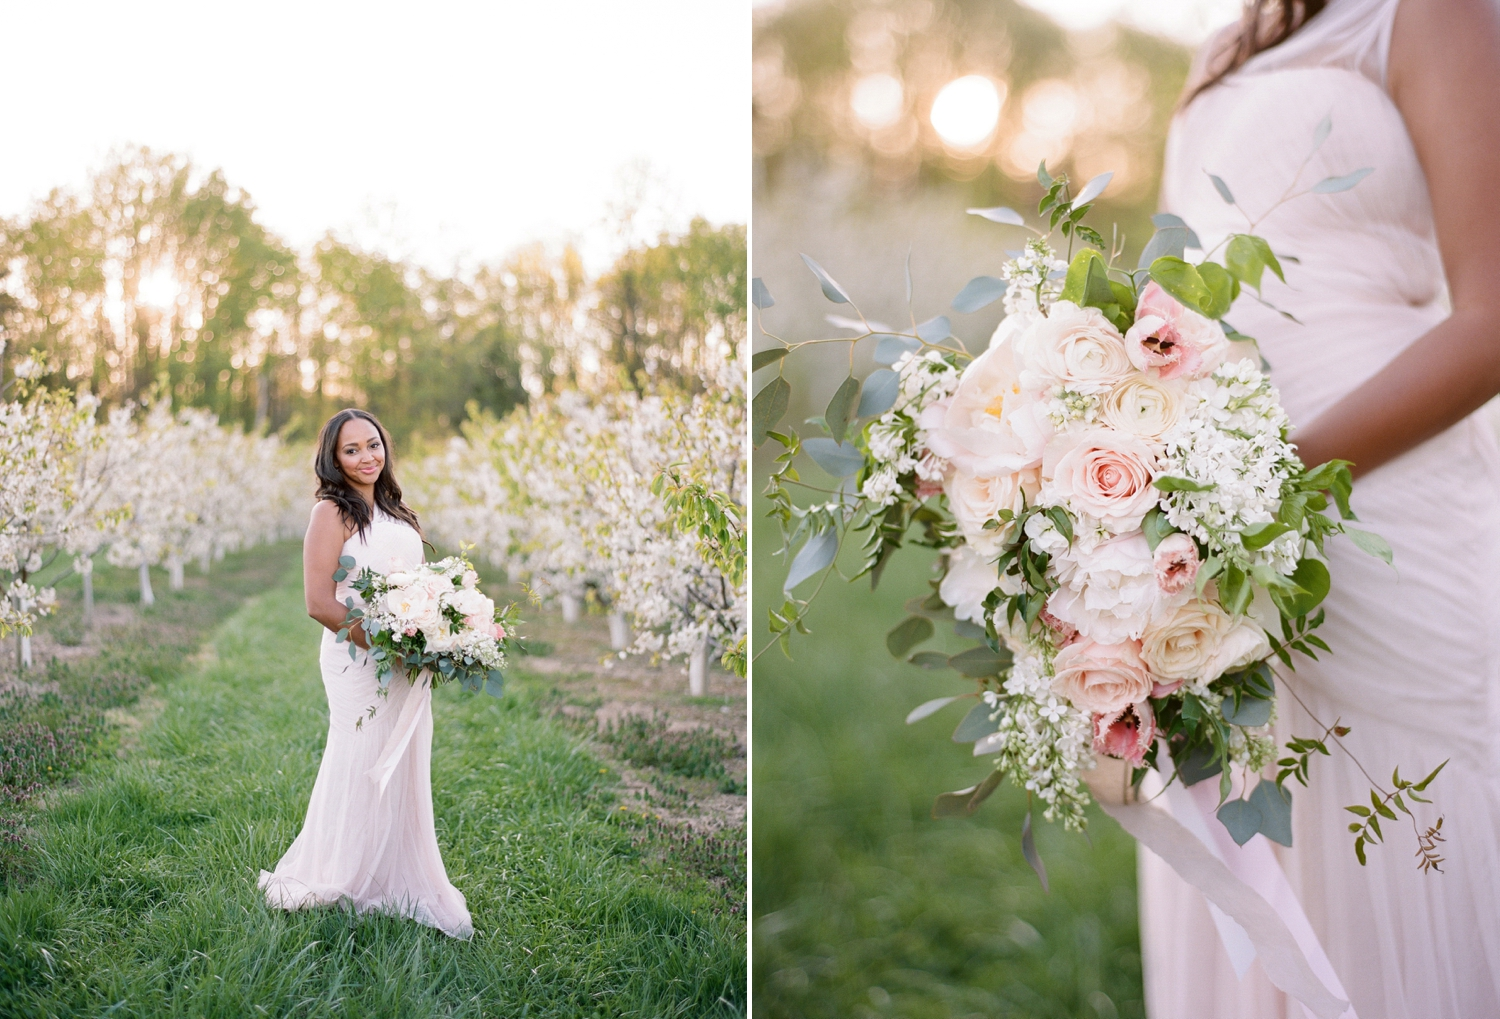 Orchard Bridal Inspiration Shoot